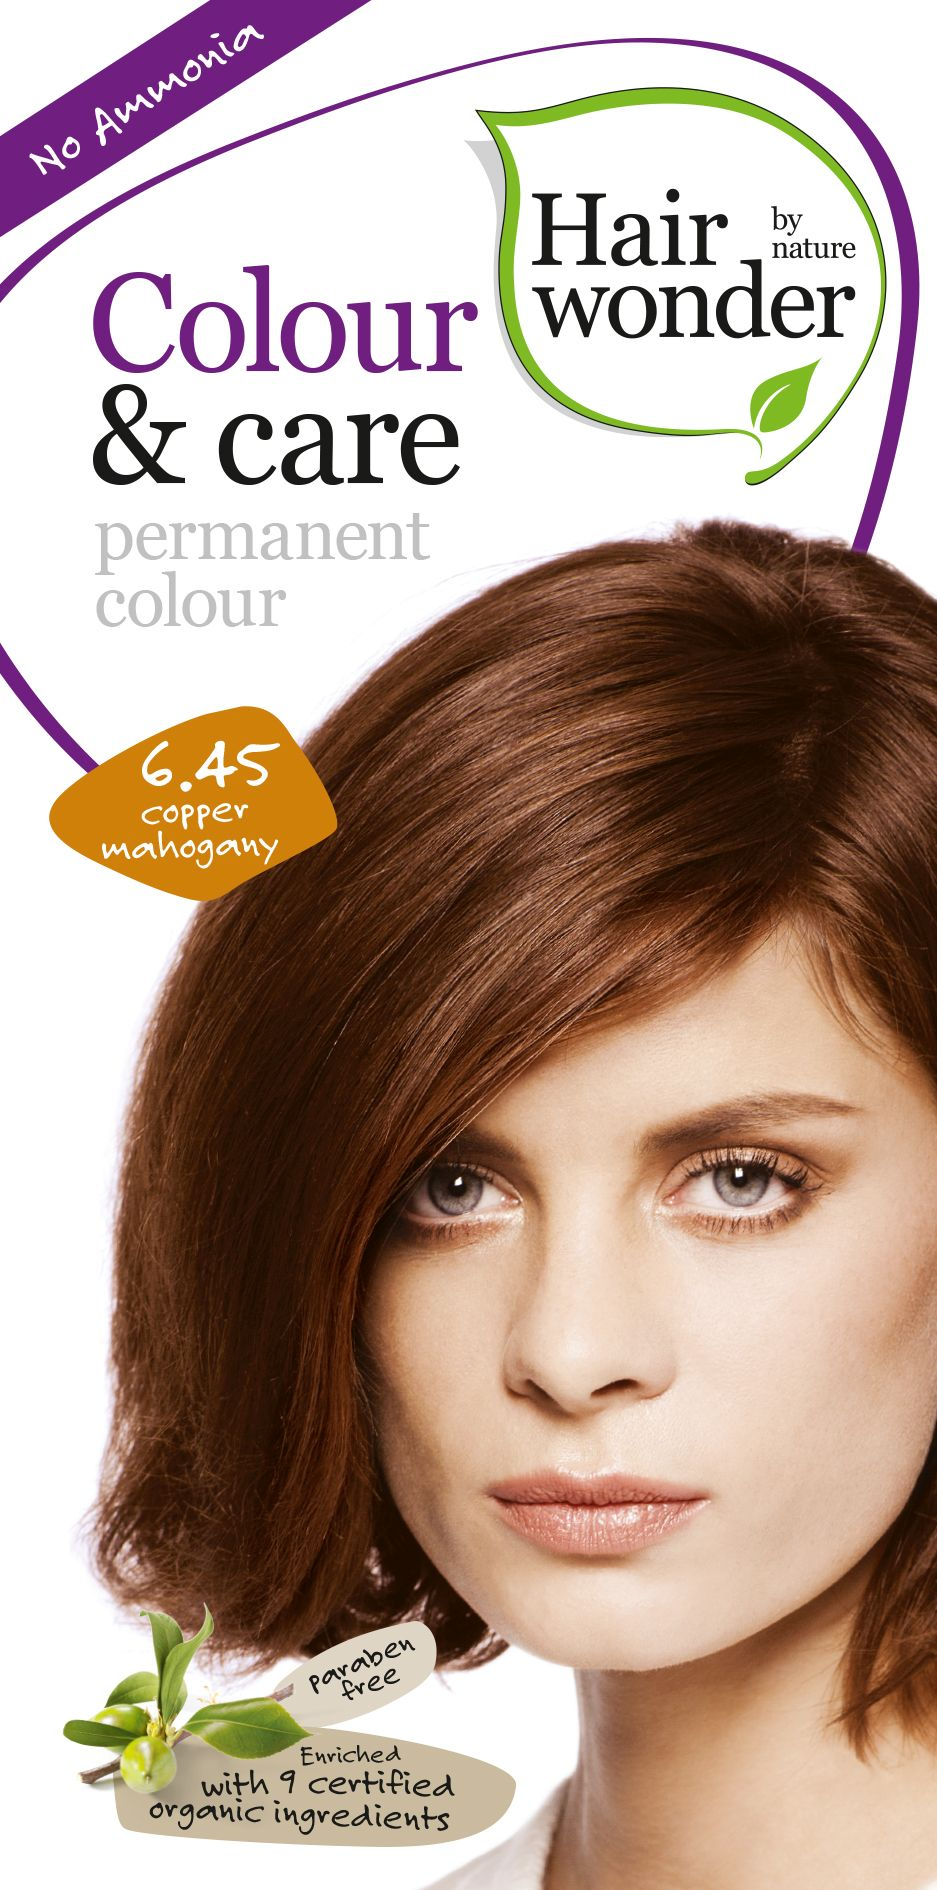 Hairwonder Colour & Care Cooper Mahogany 6.45